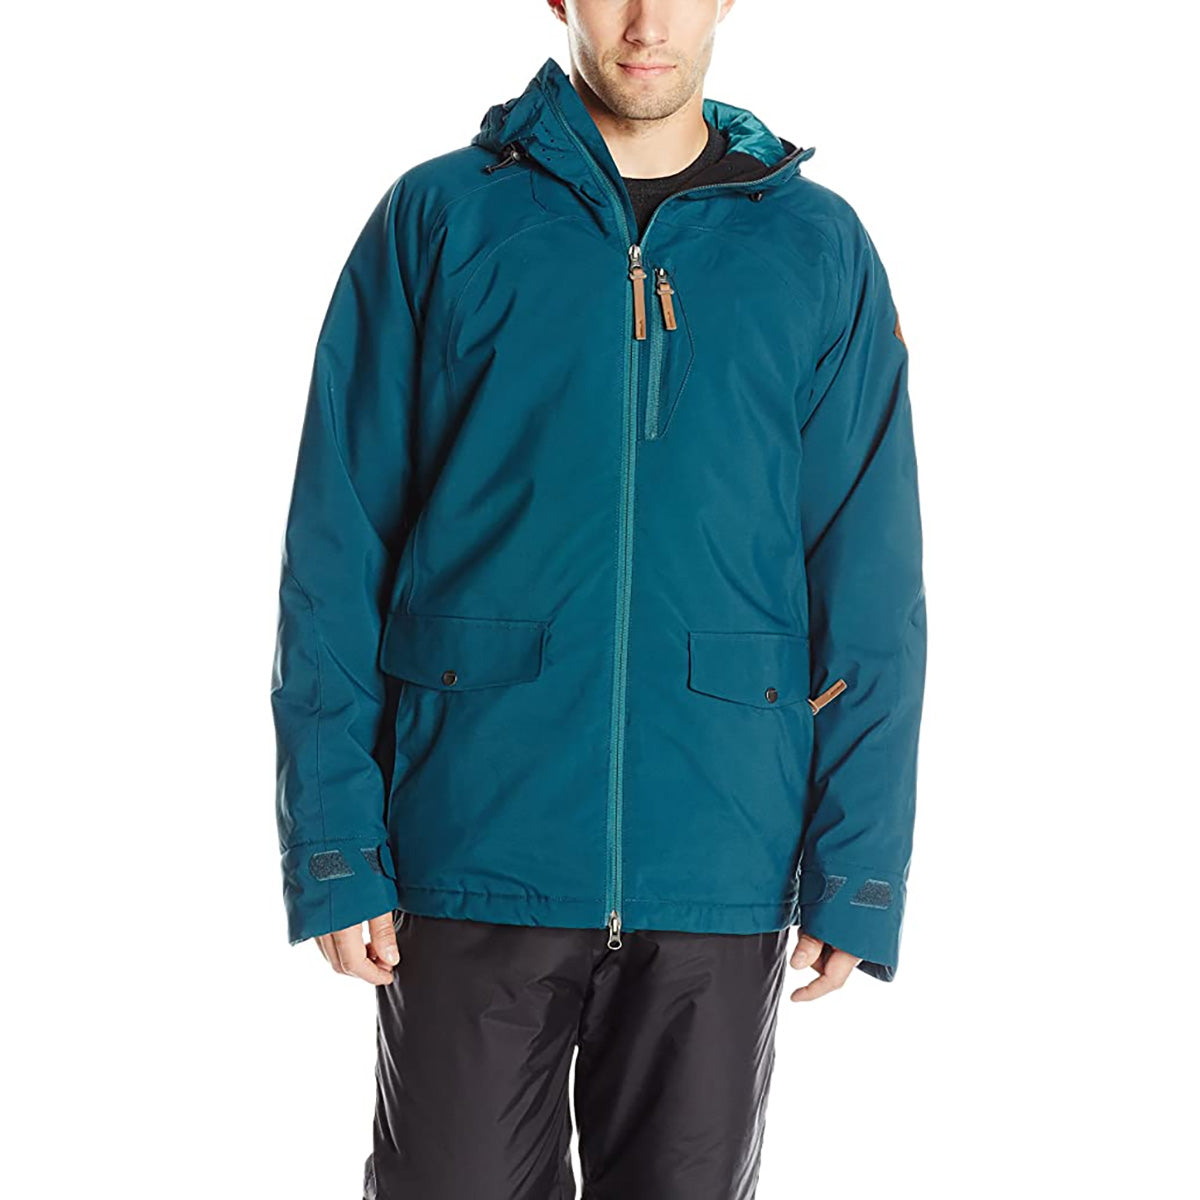 O'Neill Tempest Men's Snow Jackets (BRAND NEW)